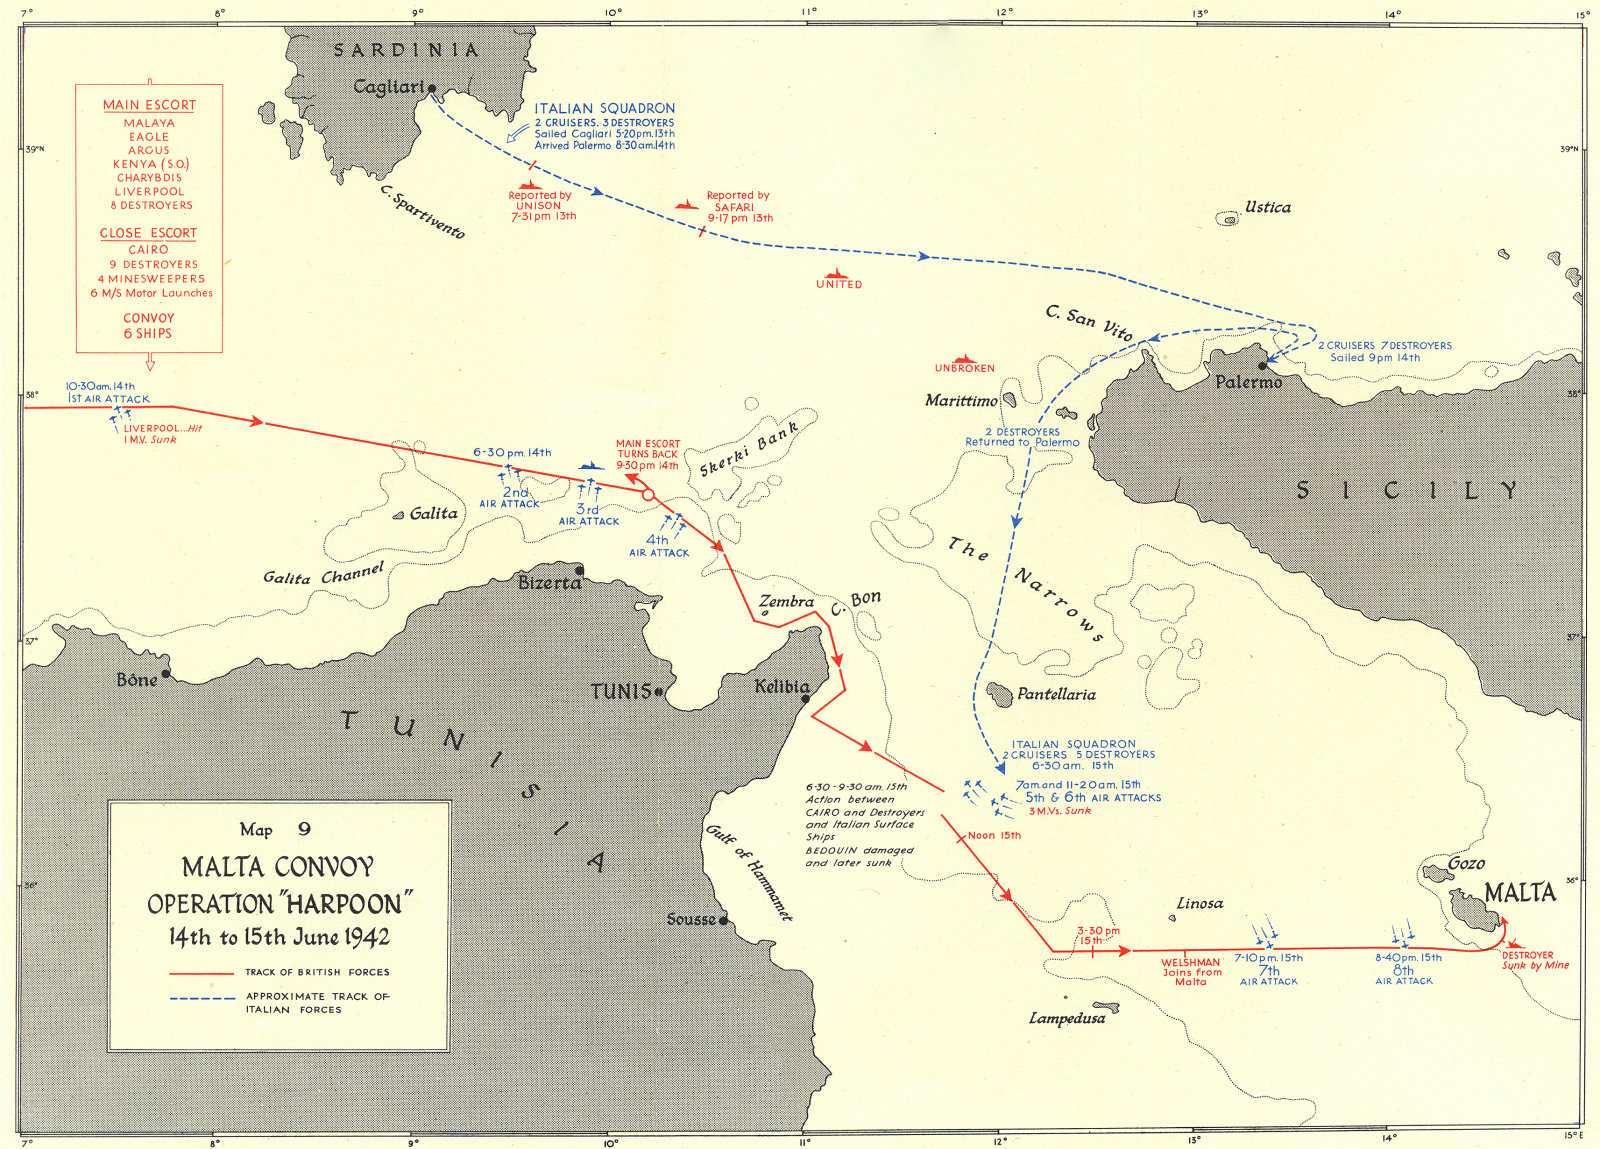 AFRICAN CAMPAIGNS. Malta Convoy operation Harpoon June 1942 1956 old map